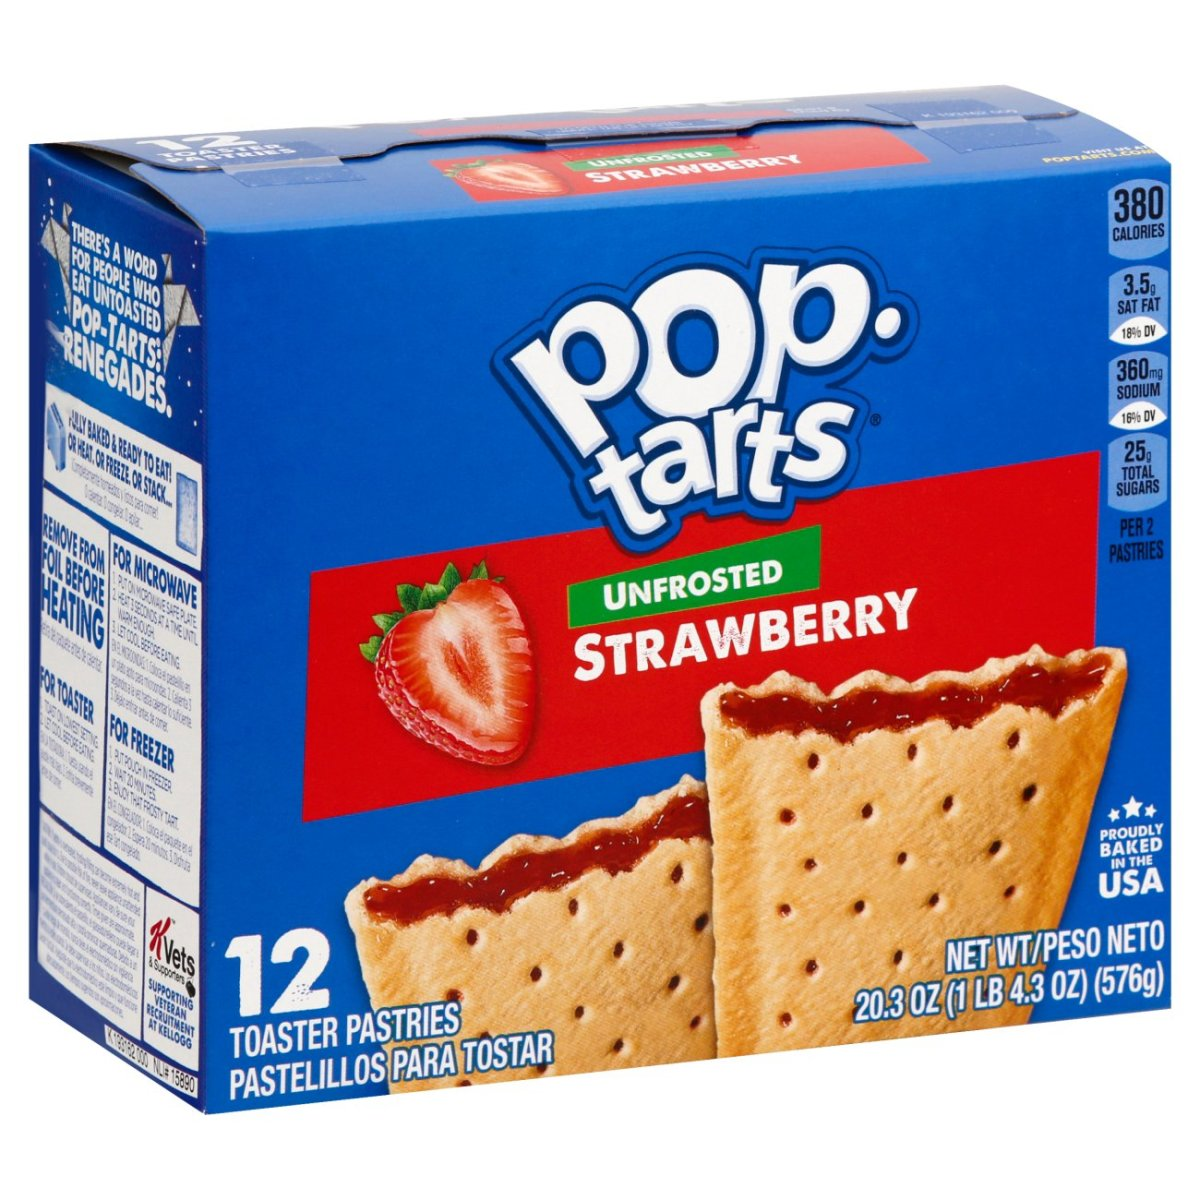 In 1964, Pop-Tarts appeared on grocery store shelves for the first time.